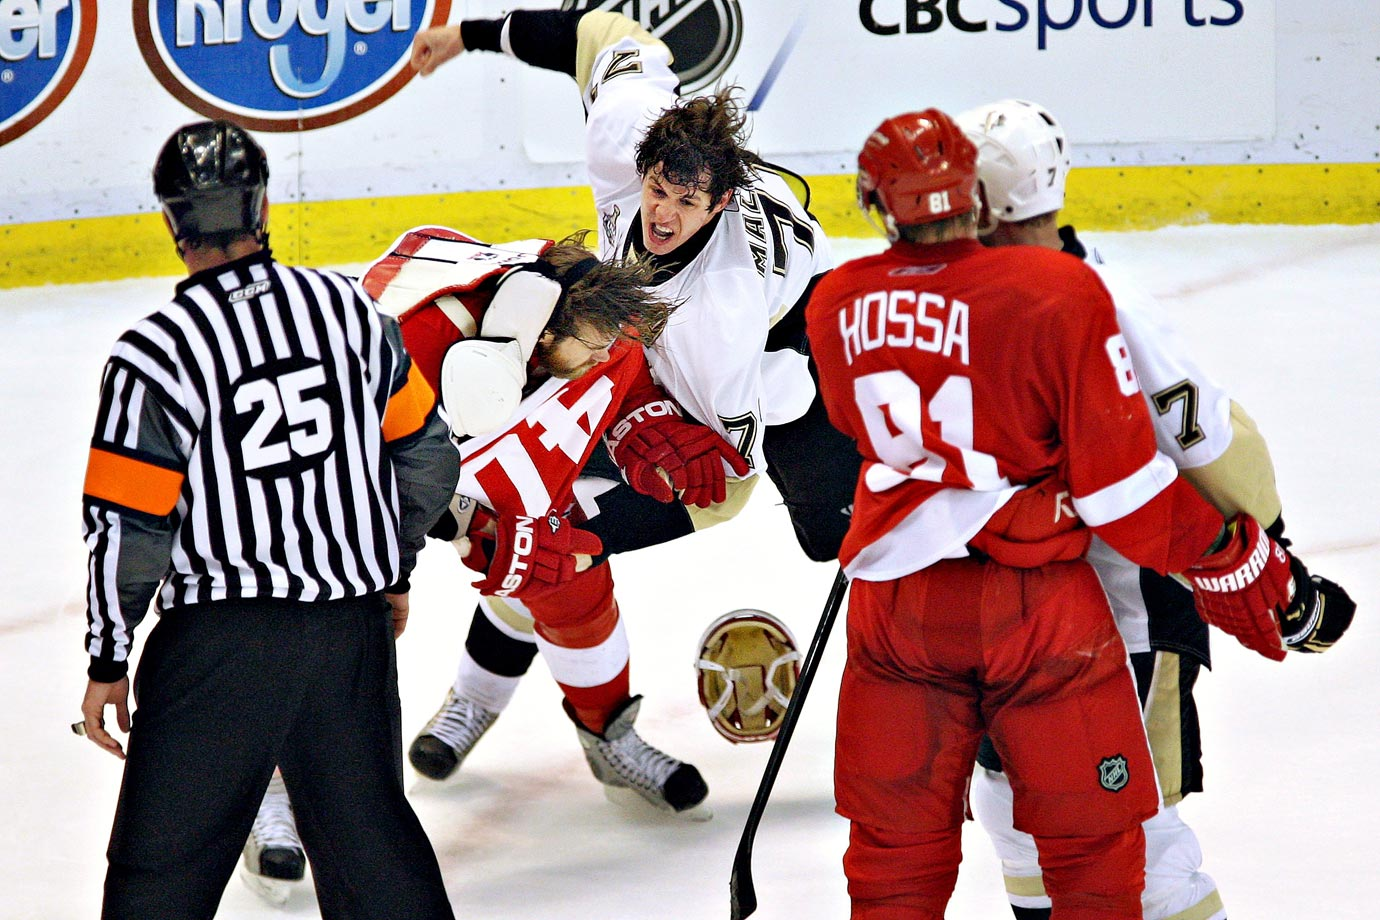 Penguins center Evgeni Malkin, who is not known for dropping his gloves, threw down with Detroit's equally pacifist center Henrik Zetterberg in the waning seconds of Game 2, a 3-1 win for the Red Wings. Malkin earned a 10-minute misconduct.